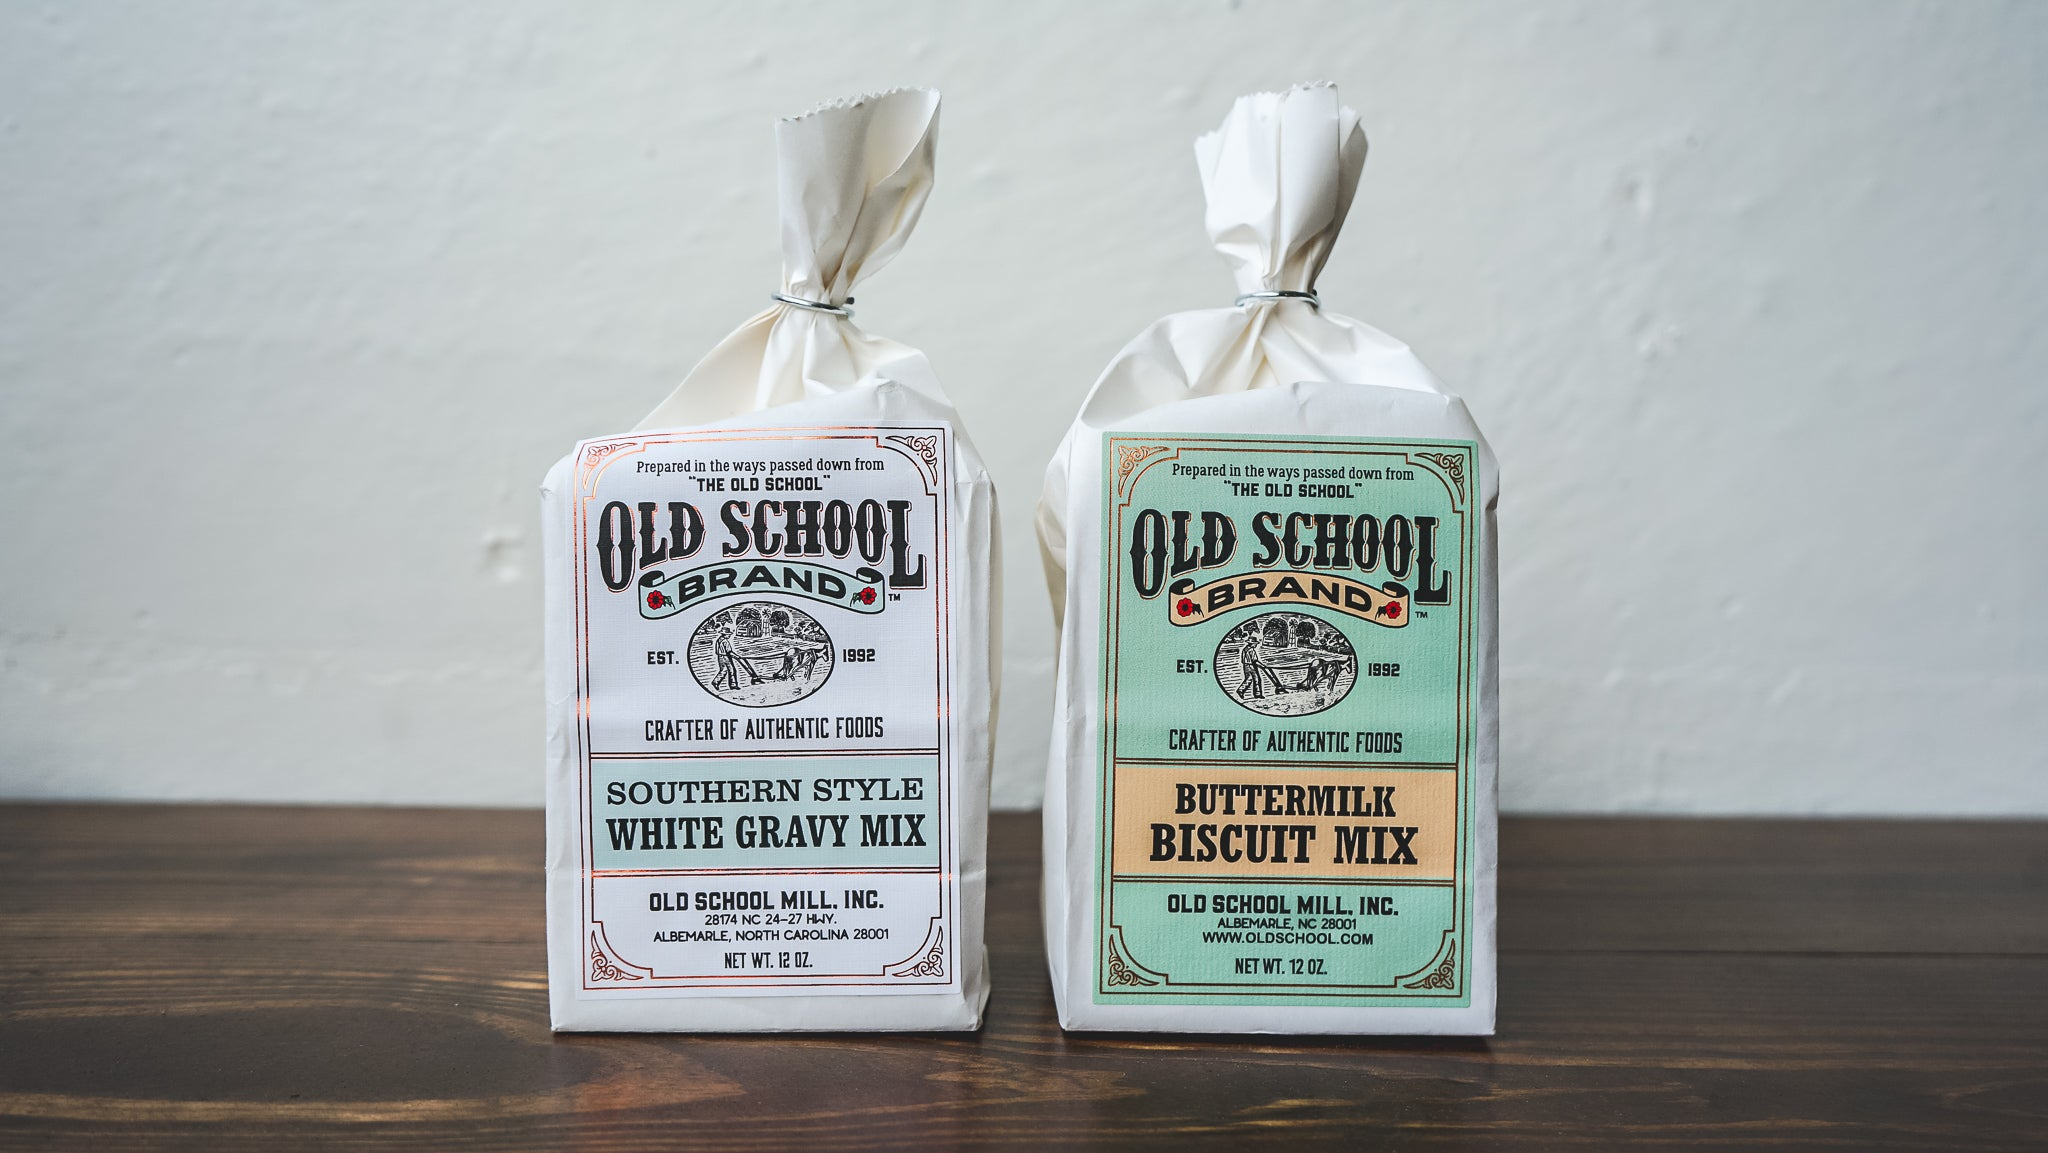 Old School Southern Style White Gravy Mix - Provisions, LLC